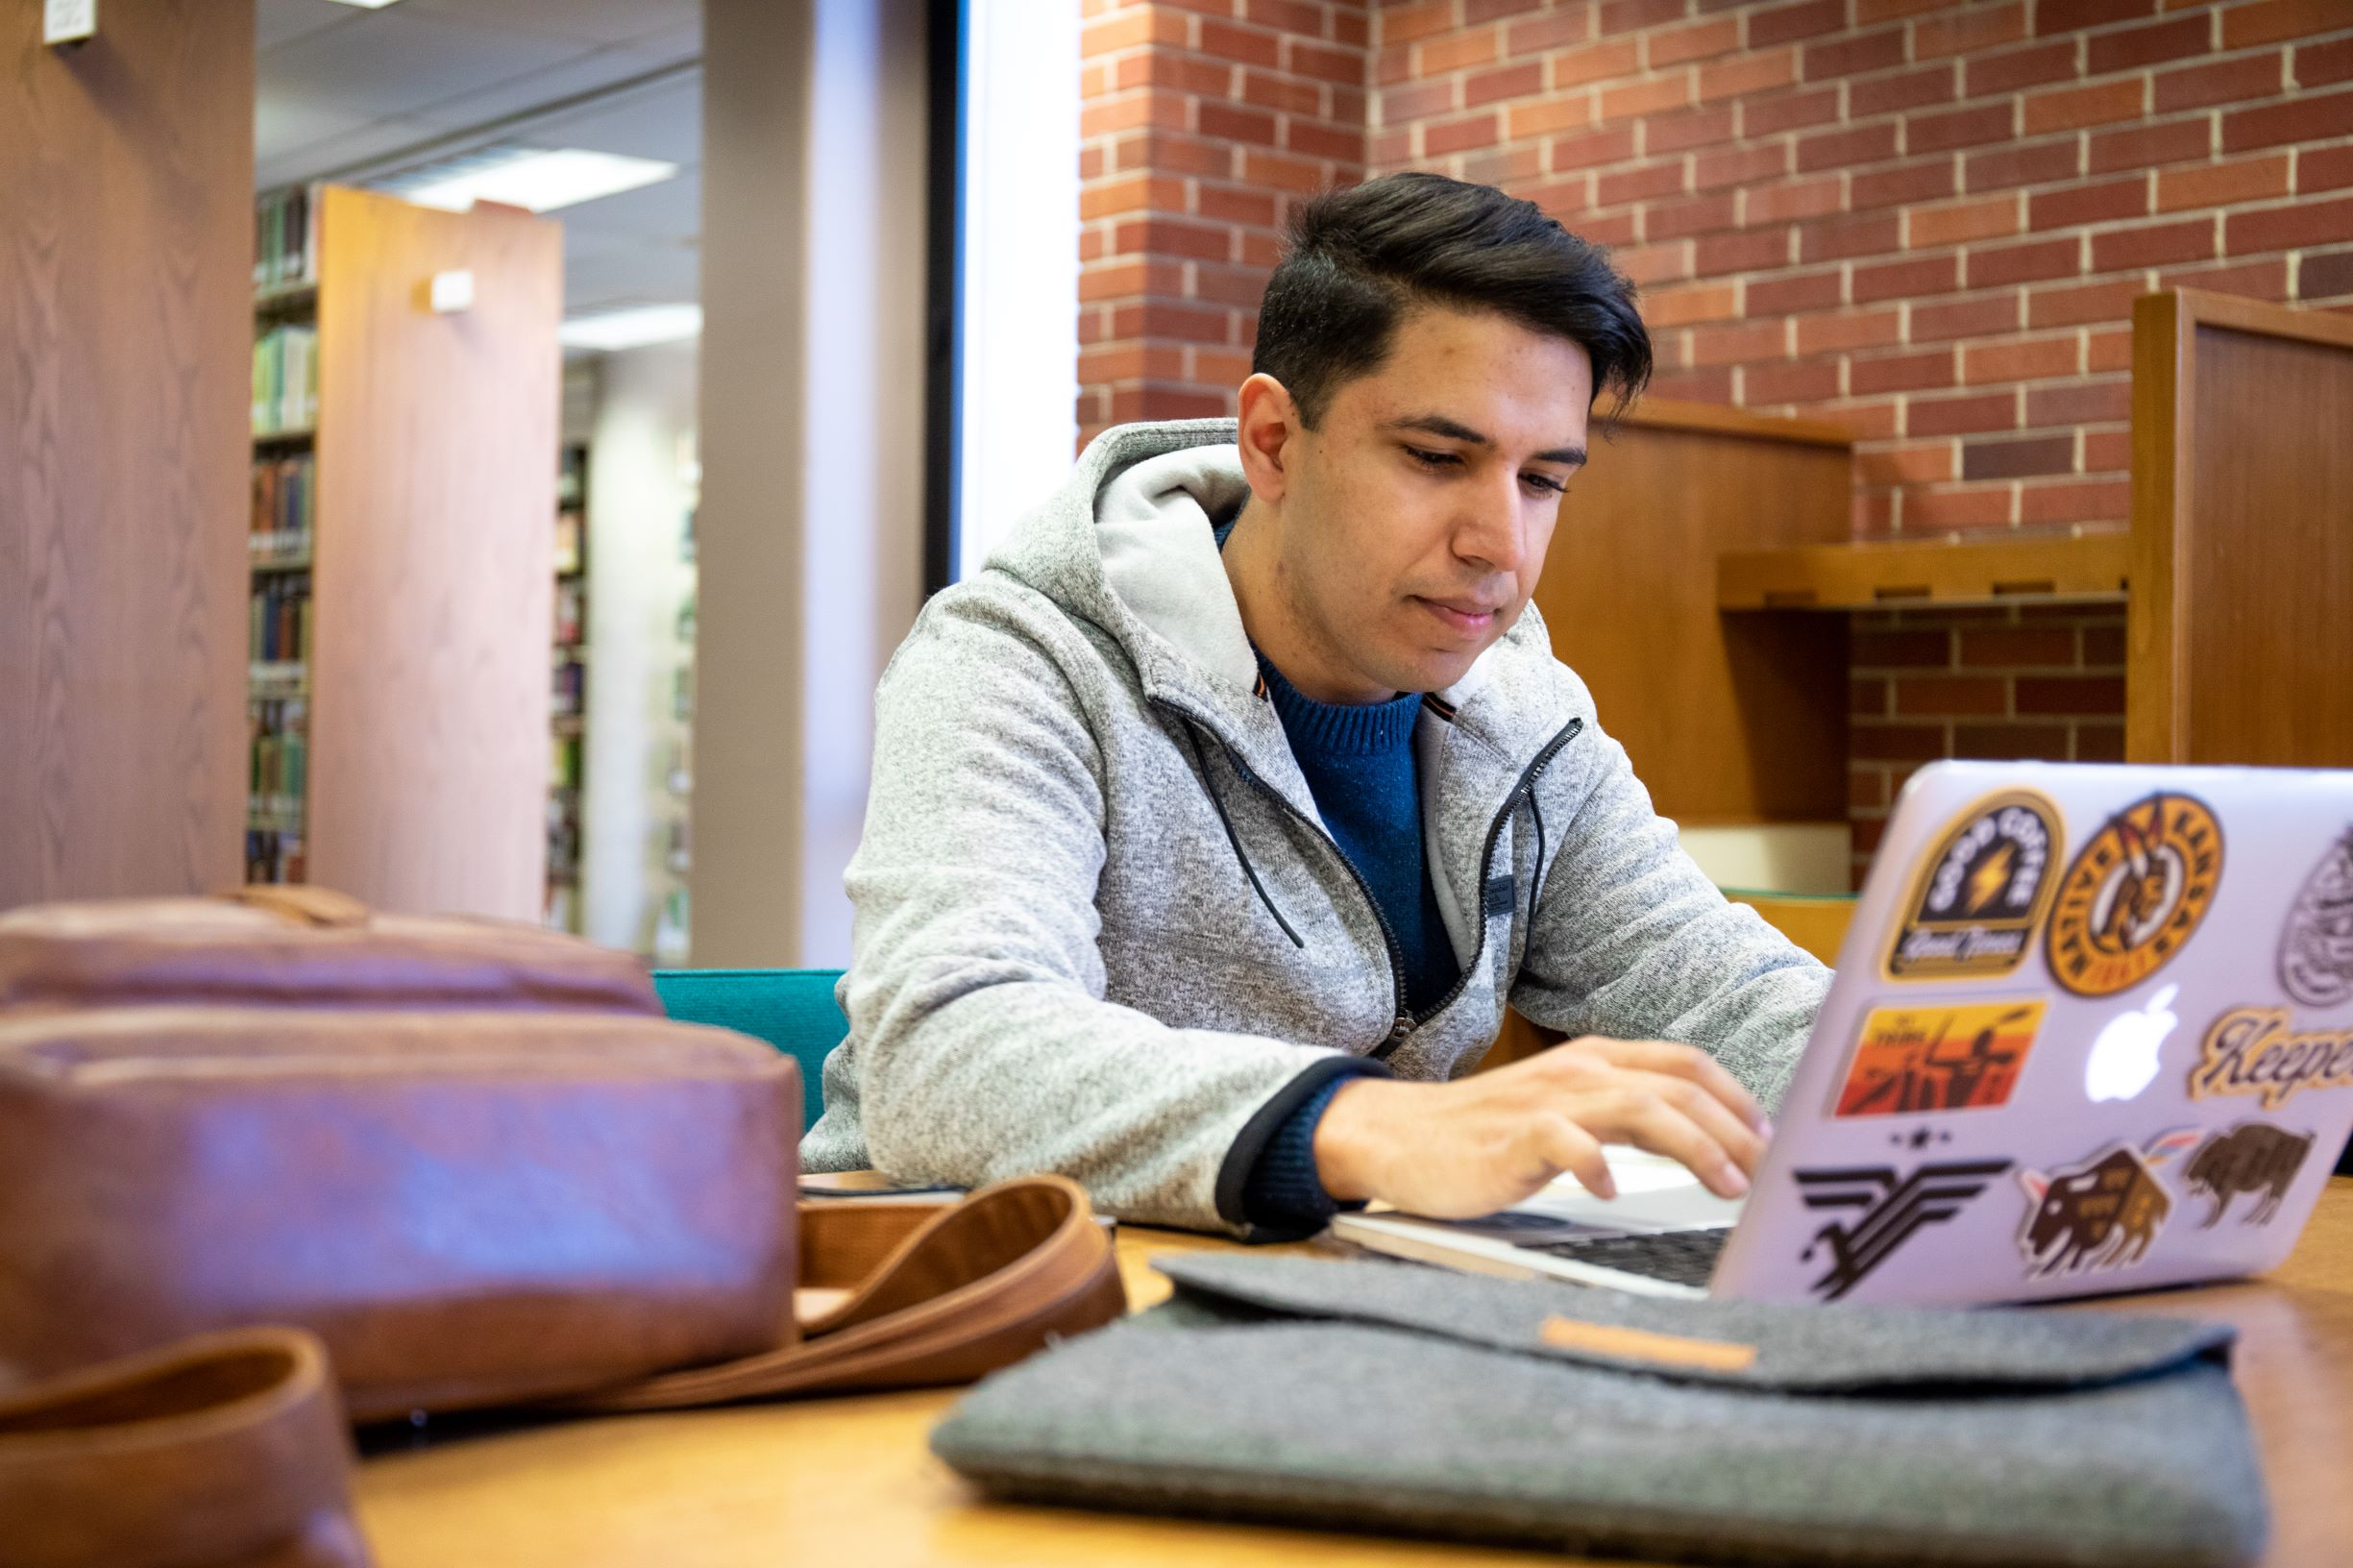 male WSU student studying with laptop